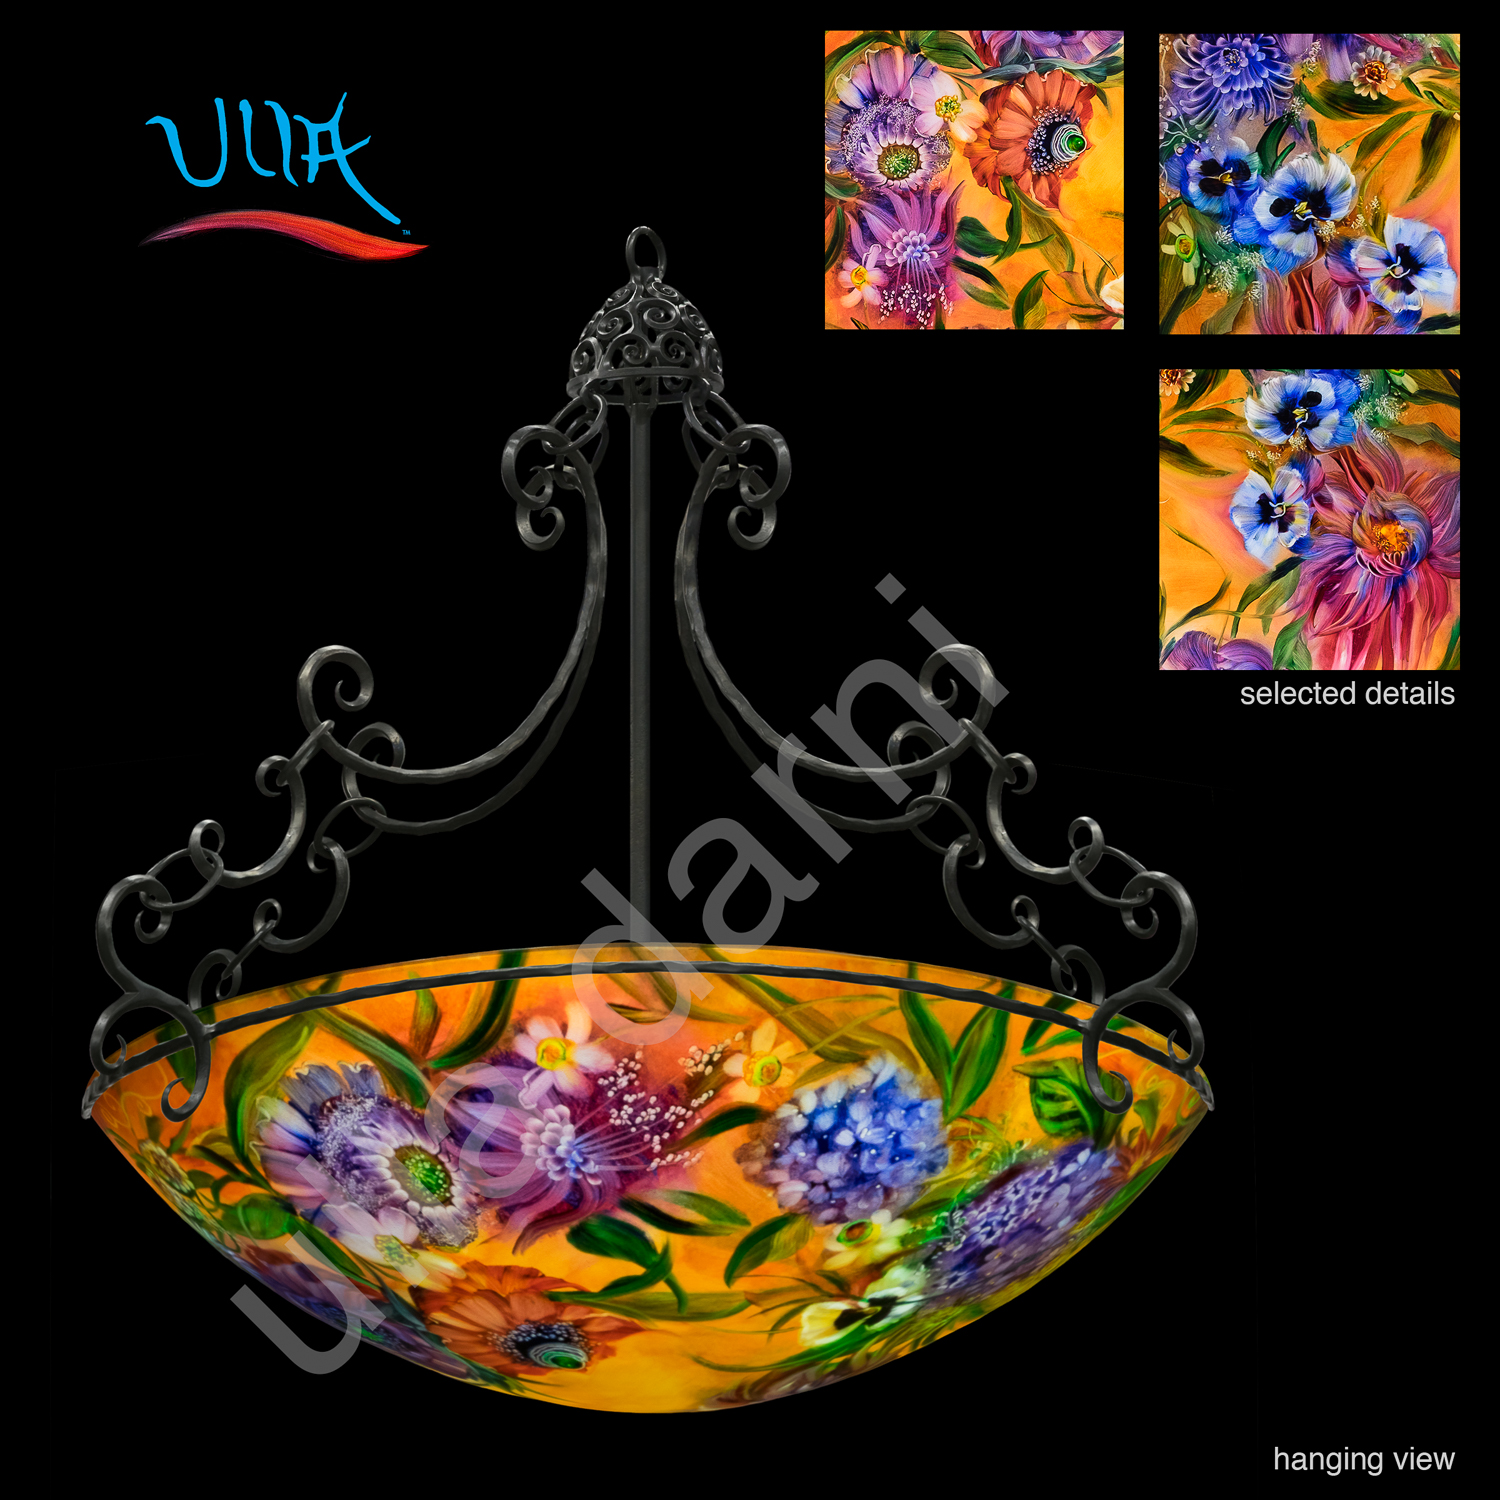 Decorative lighting reverse glass painted chandeliers ulla darni number one o six aloadofball Images